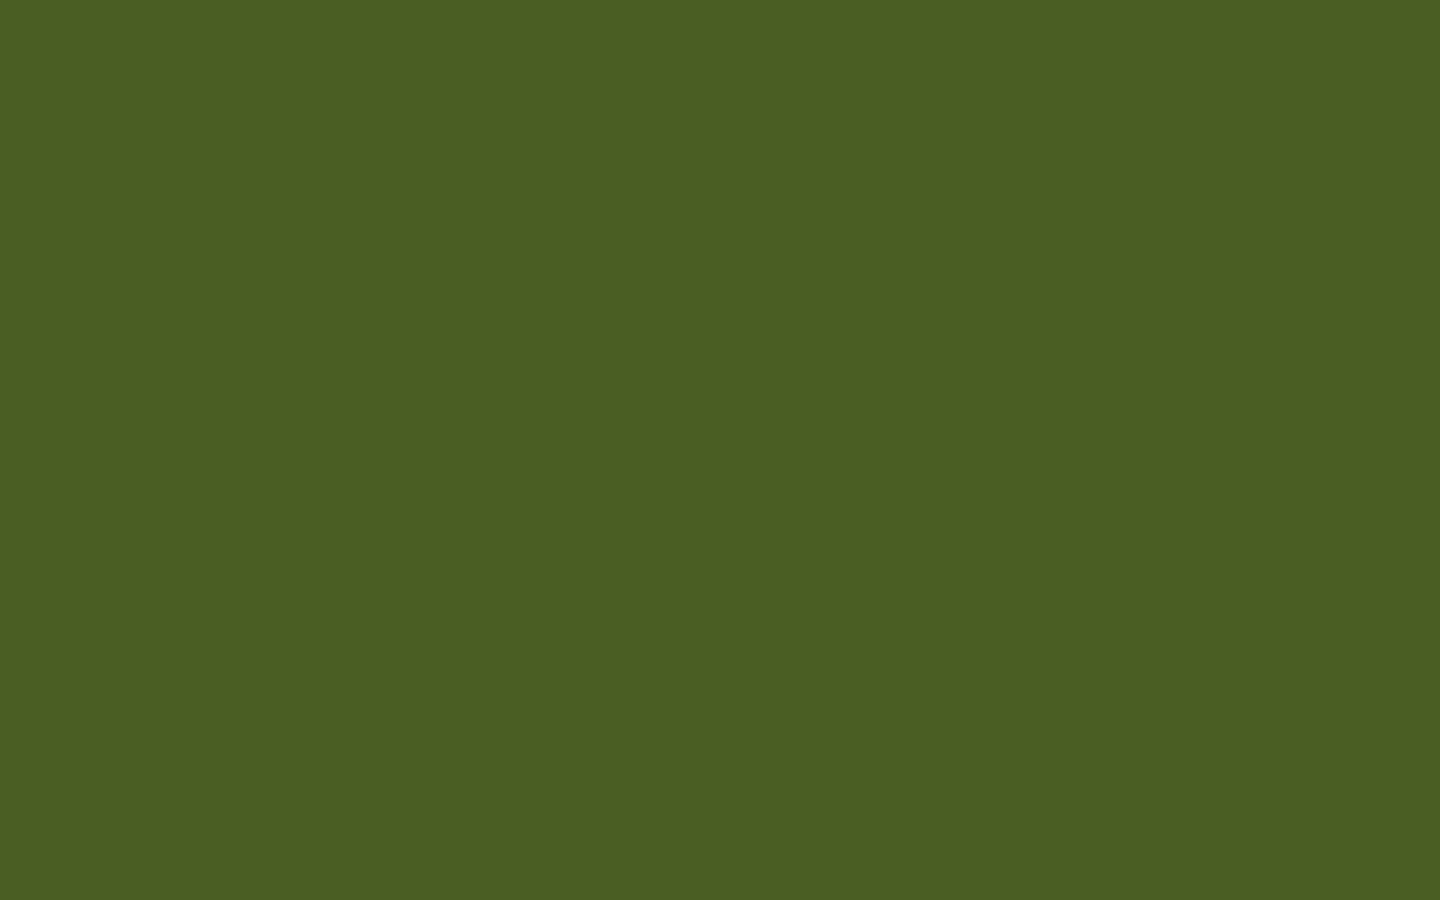 1440x900 Dark Moss Green Solid Color Background